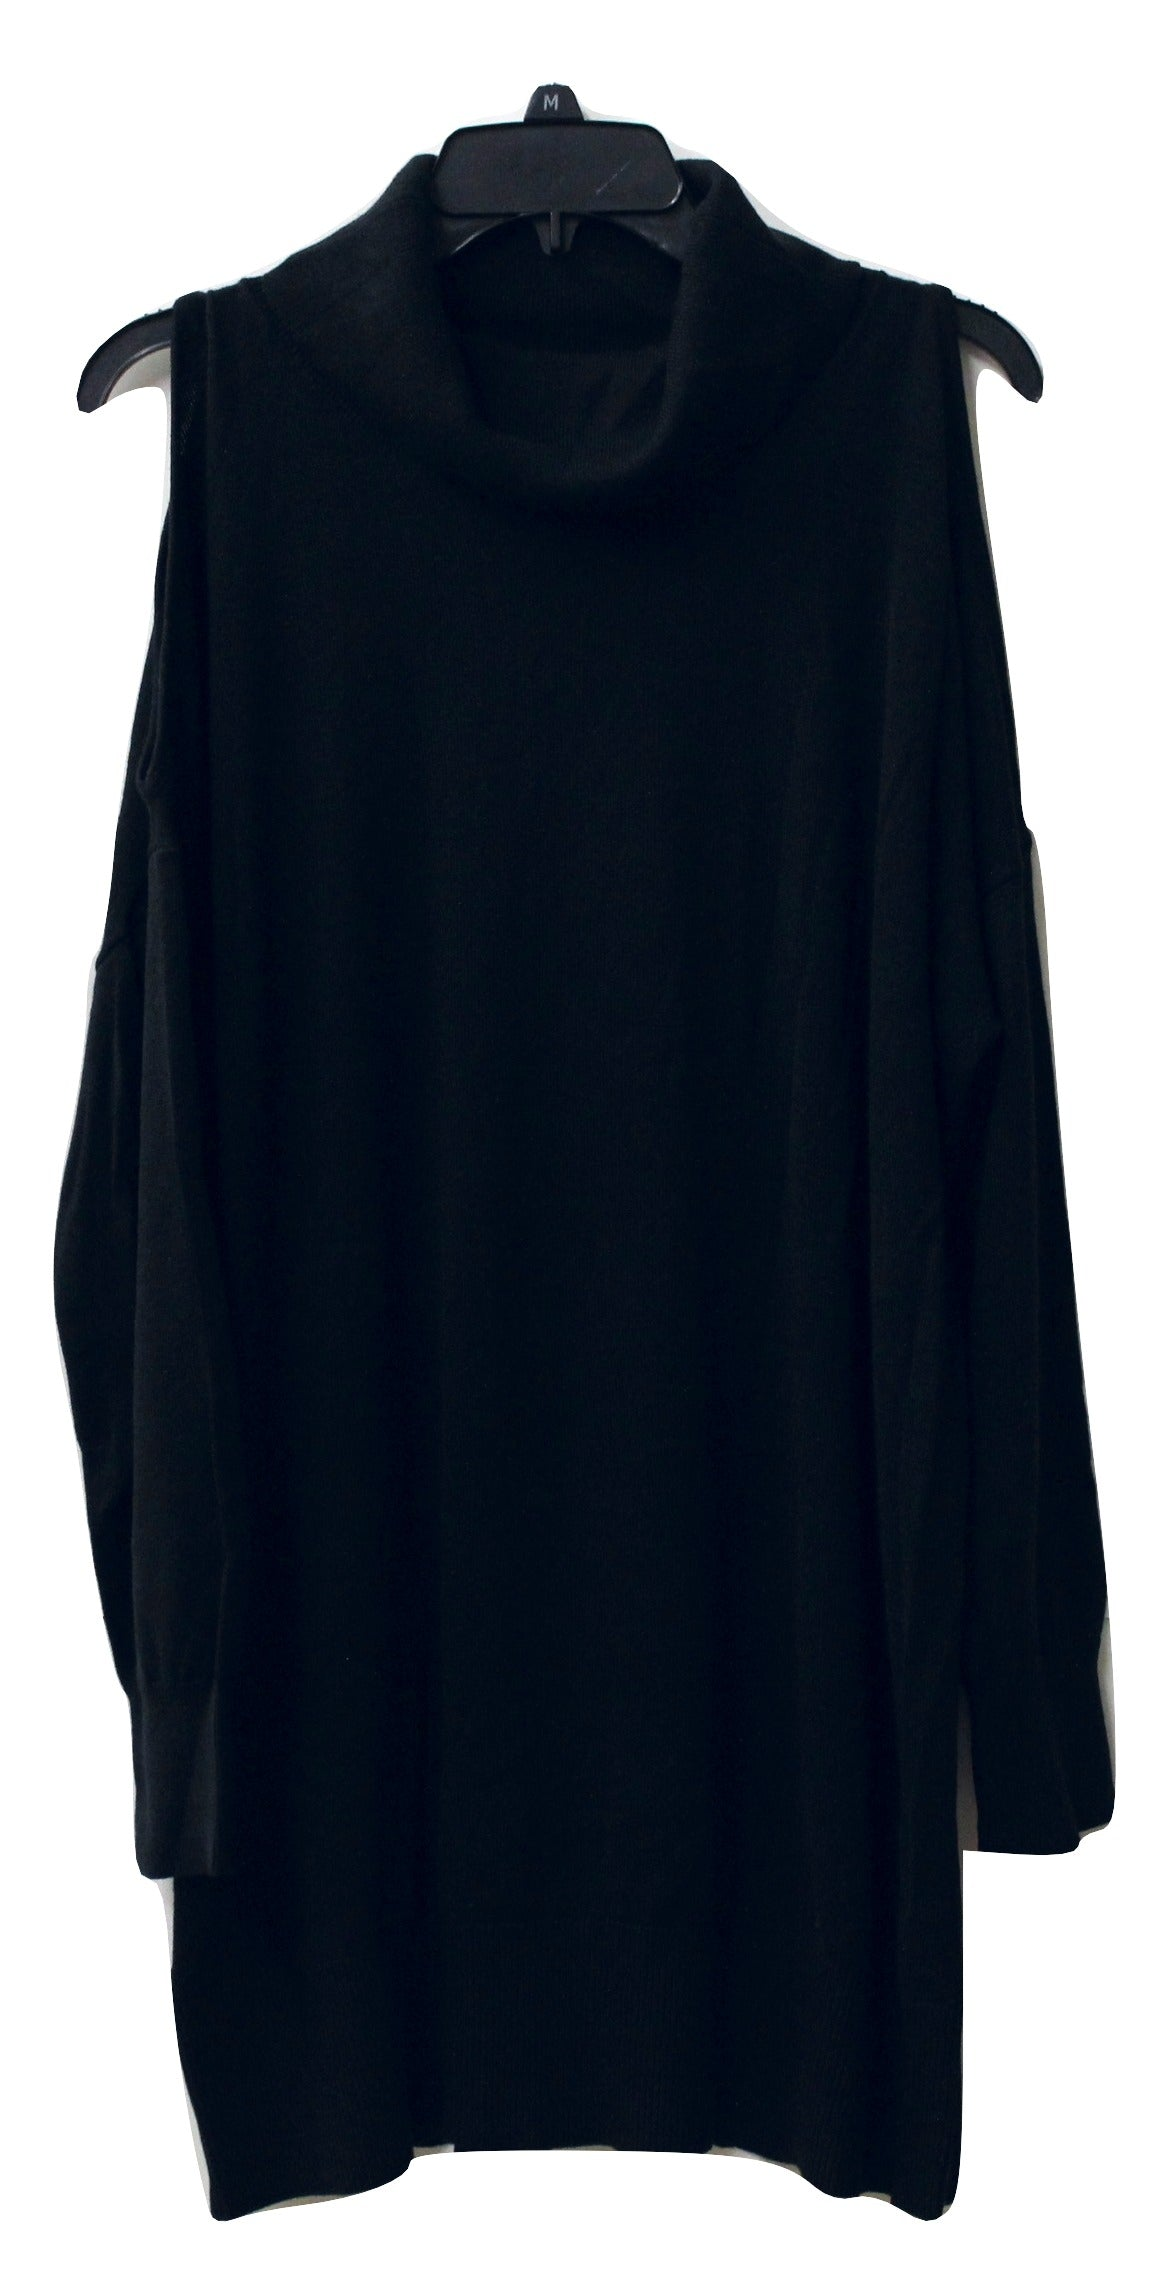 BCBGeneration Women's Black Shoulderless Sweater Size L